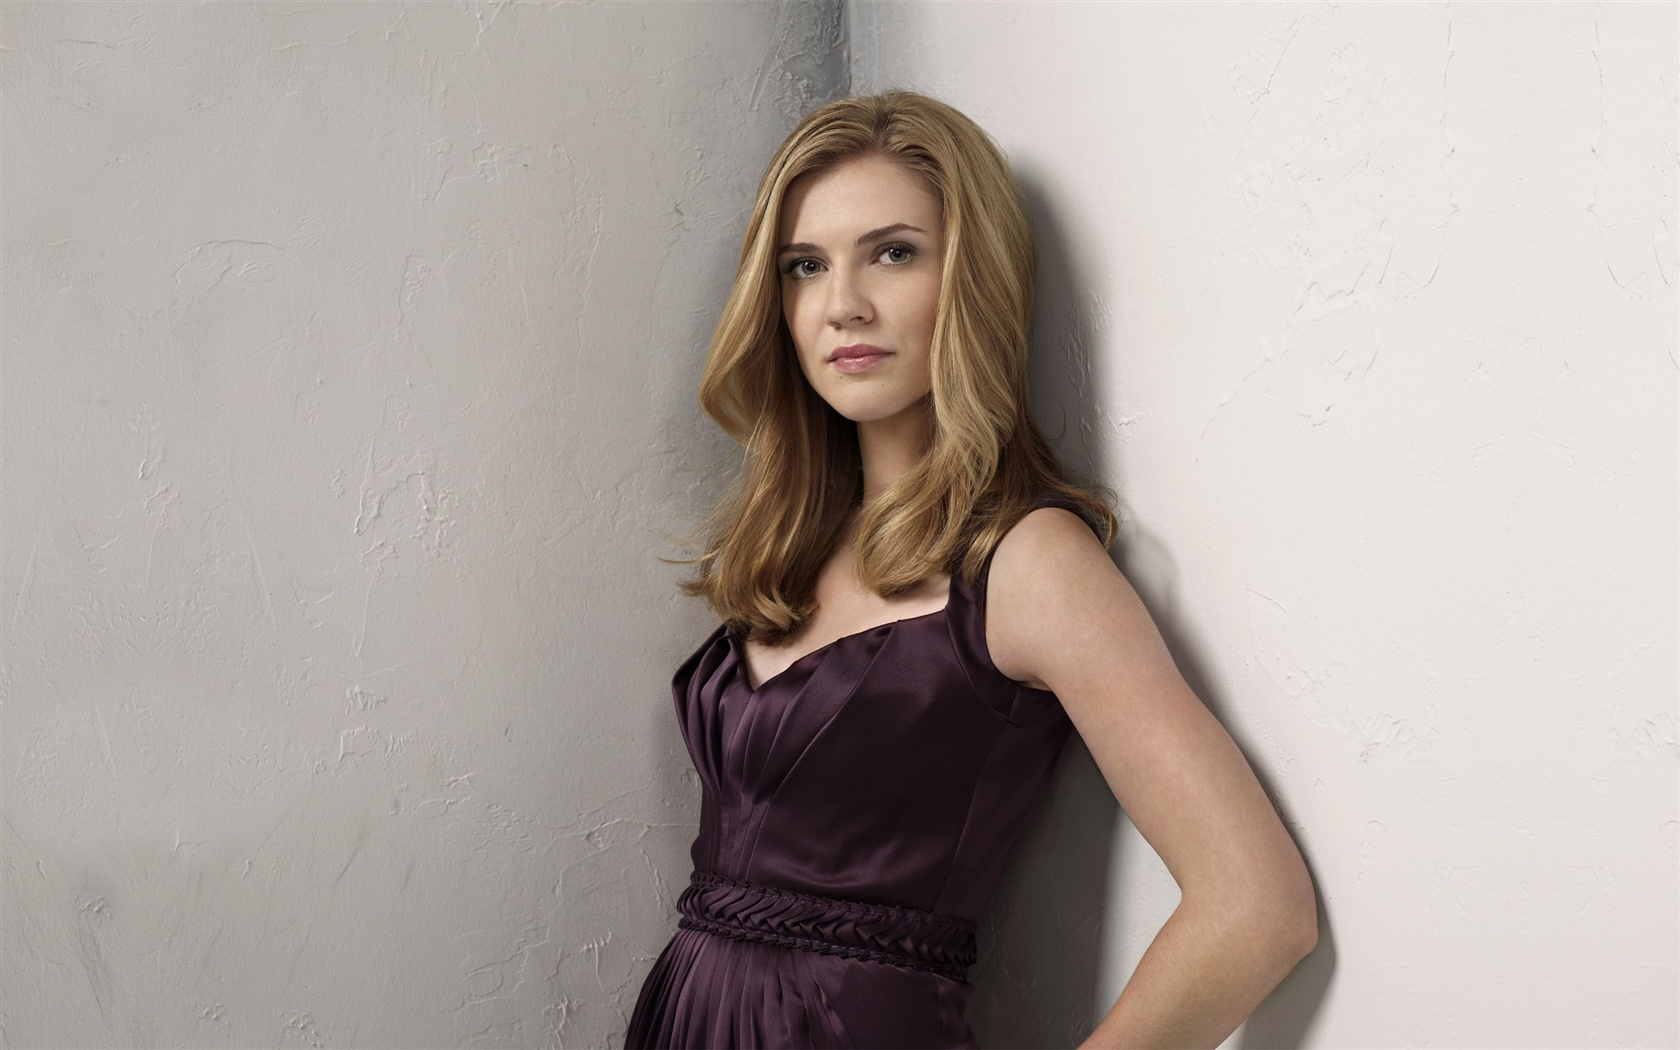 Sara Canning 01 wallpaper - 1680x1050